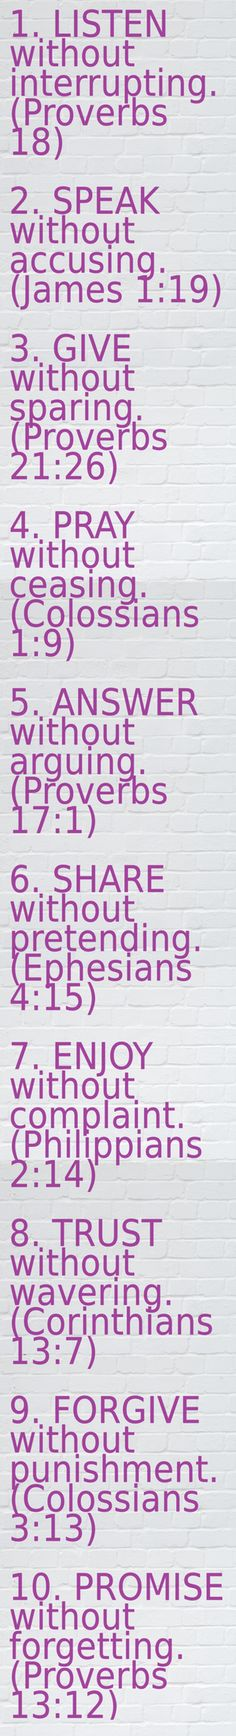 By Proverbsway. Love is..1. LISTEN without interrupting. (Proverbs 18)  2. SPEAK without accusing. (James 1:19)  3. GIVE without sparing. (Proverbs 21:26)  4. PRAY without ceasing. (Colossians 1:9)  5. ANSWER without arguing. (Proverbs 17:1)  6. SHARE without pretending. (Ephesians 4:15)  7. ENJOY without complaint. (Philippians 2:14)  8. TRUST without wavering. (Corinthians 13:7)  9. FORGIVE without punishment. (Colossians 3:13)  10. PROMISE without forgetting. (Proverbs 13:12)